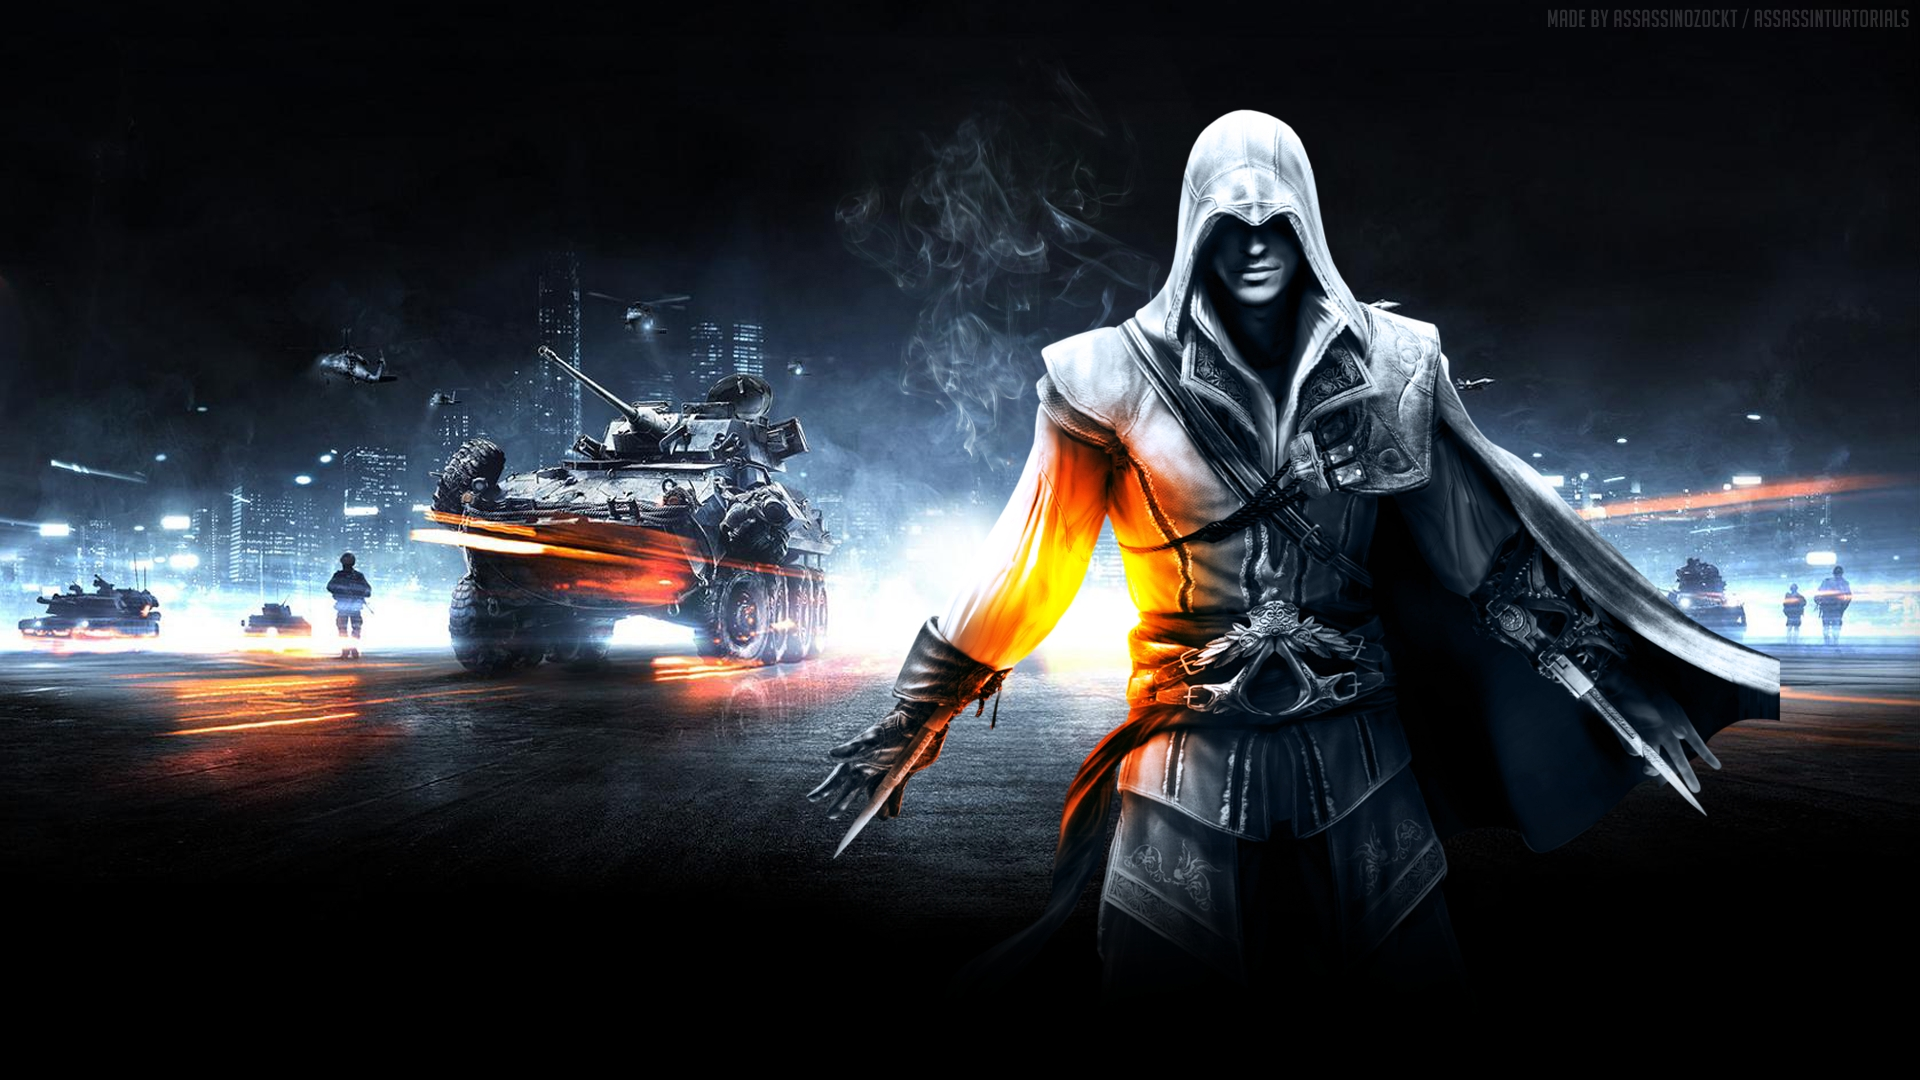 gaming-backgrounds-pictures-hd | wallpaper.wiki